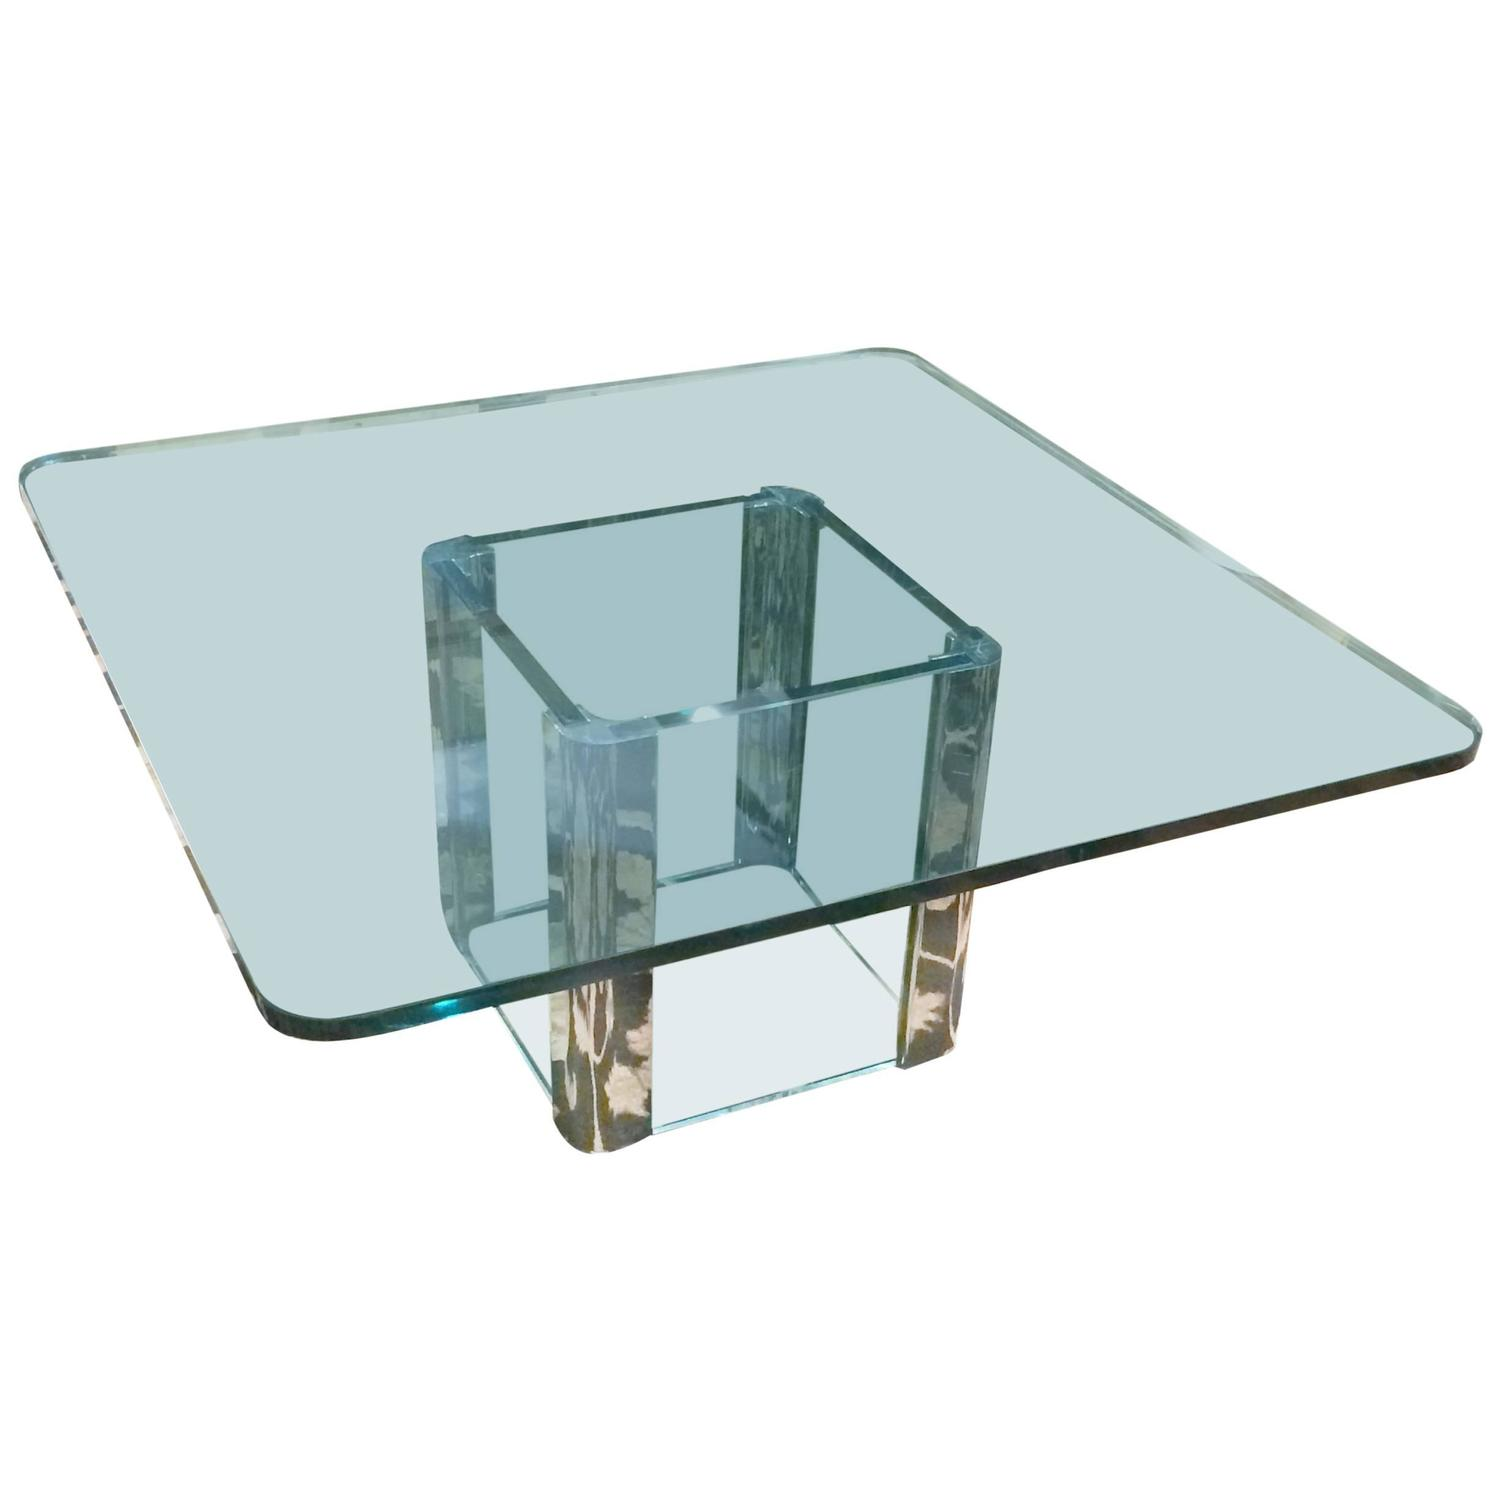 Pace Mid Century Modern Square Glass and Chrome Coffee Table at